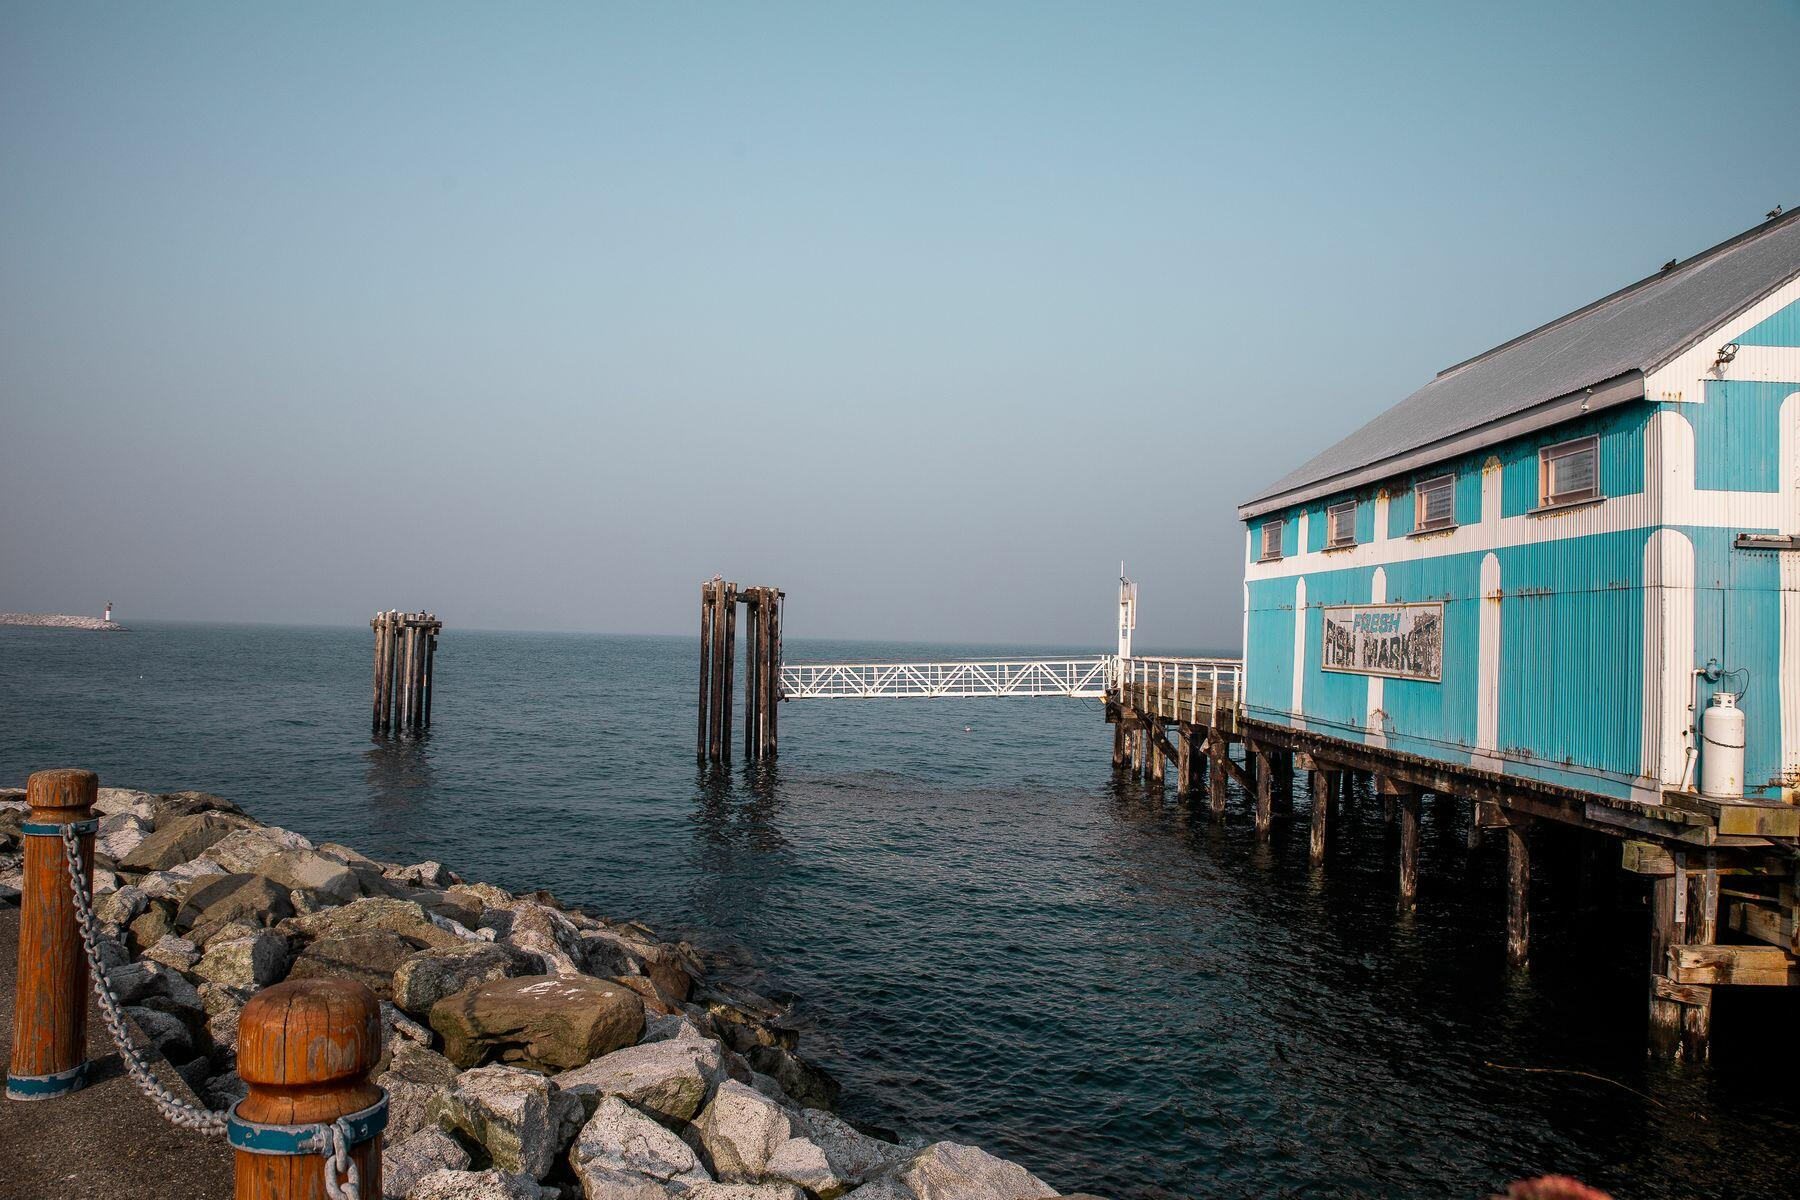 a building on a pier